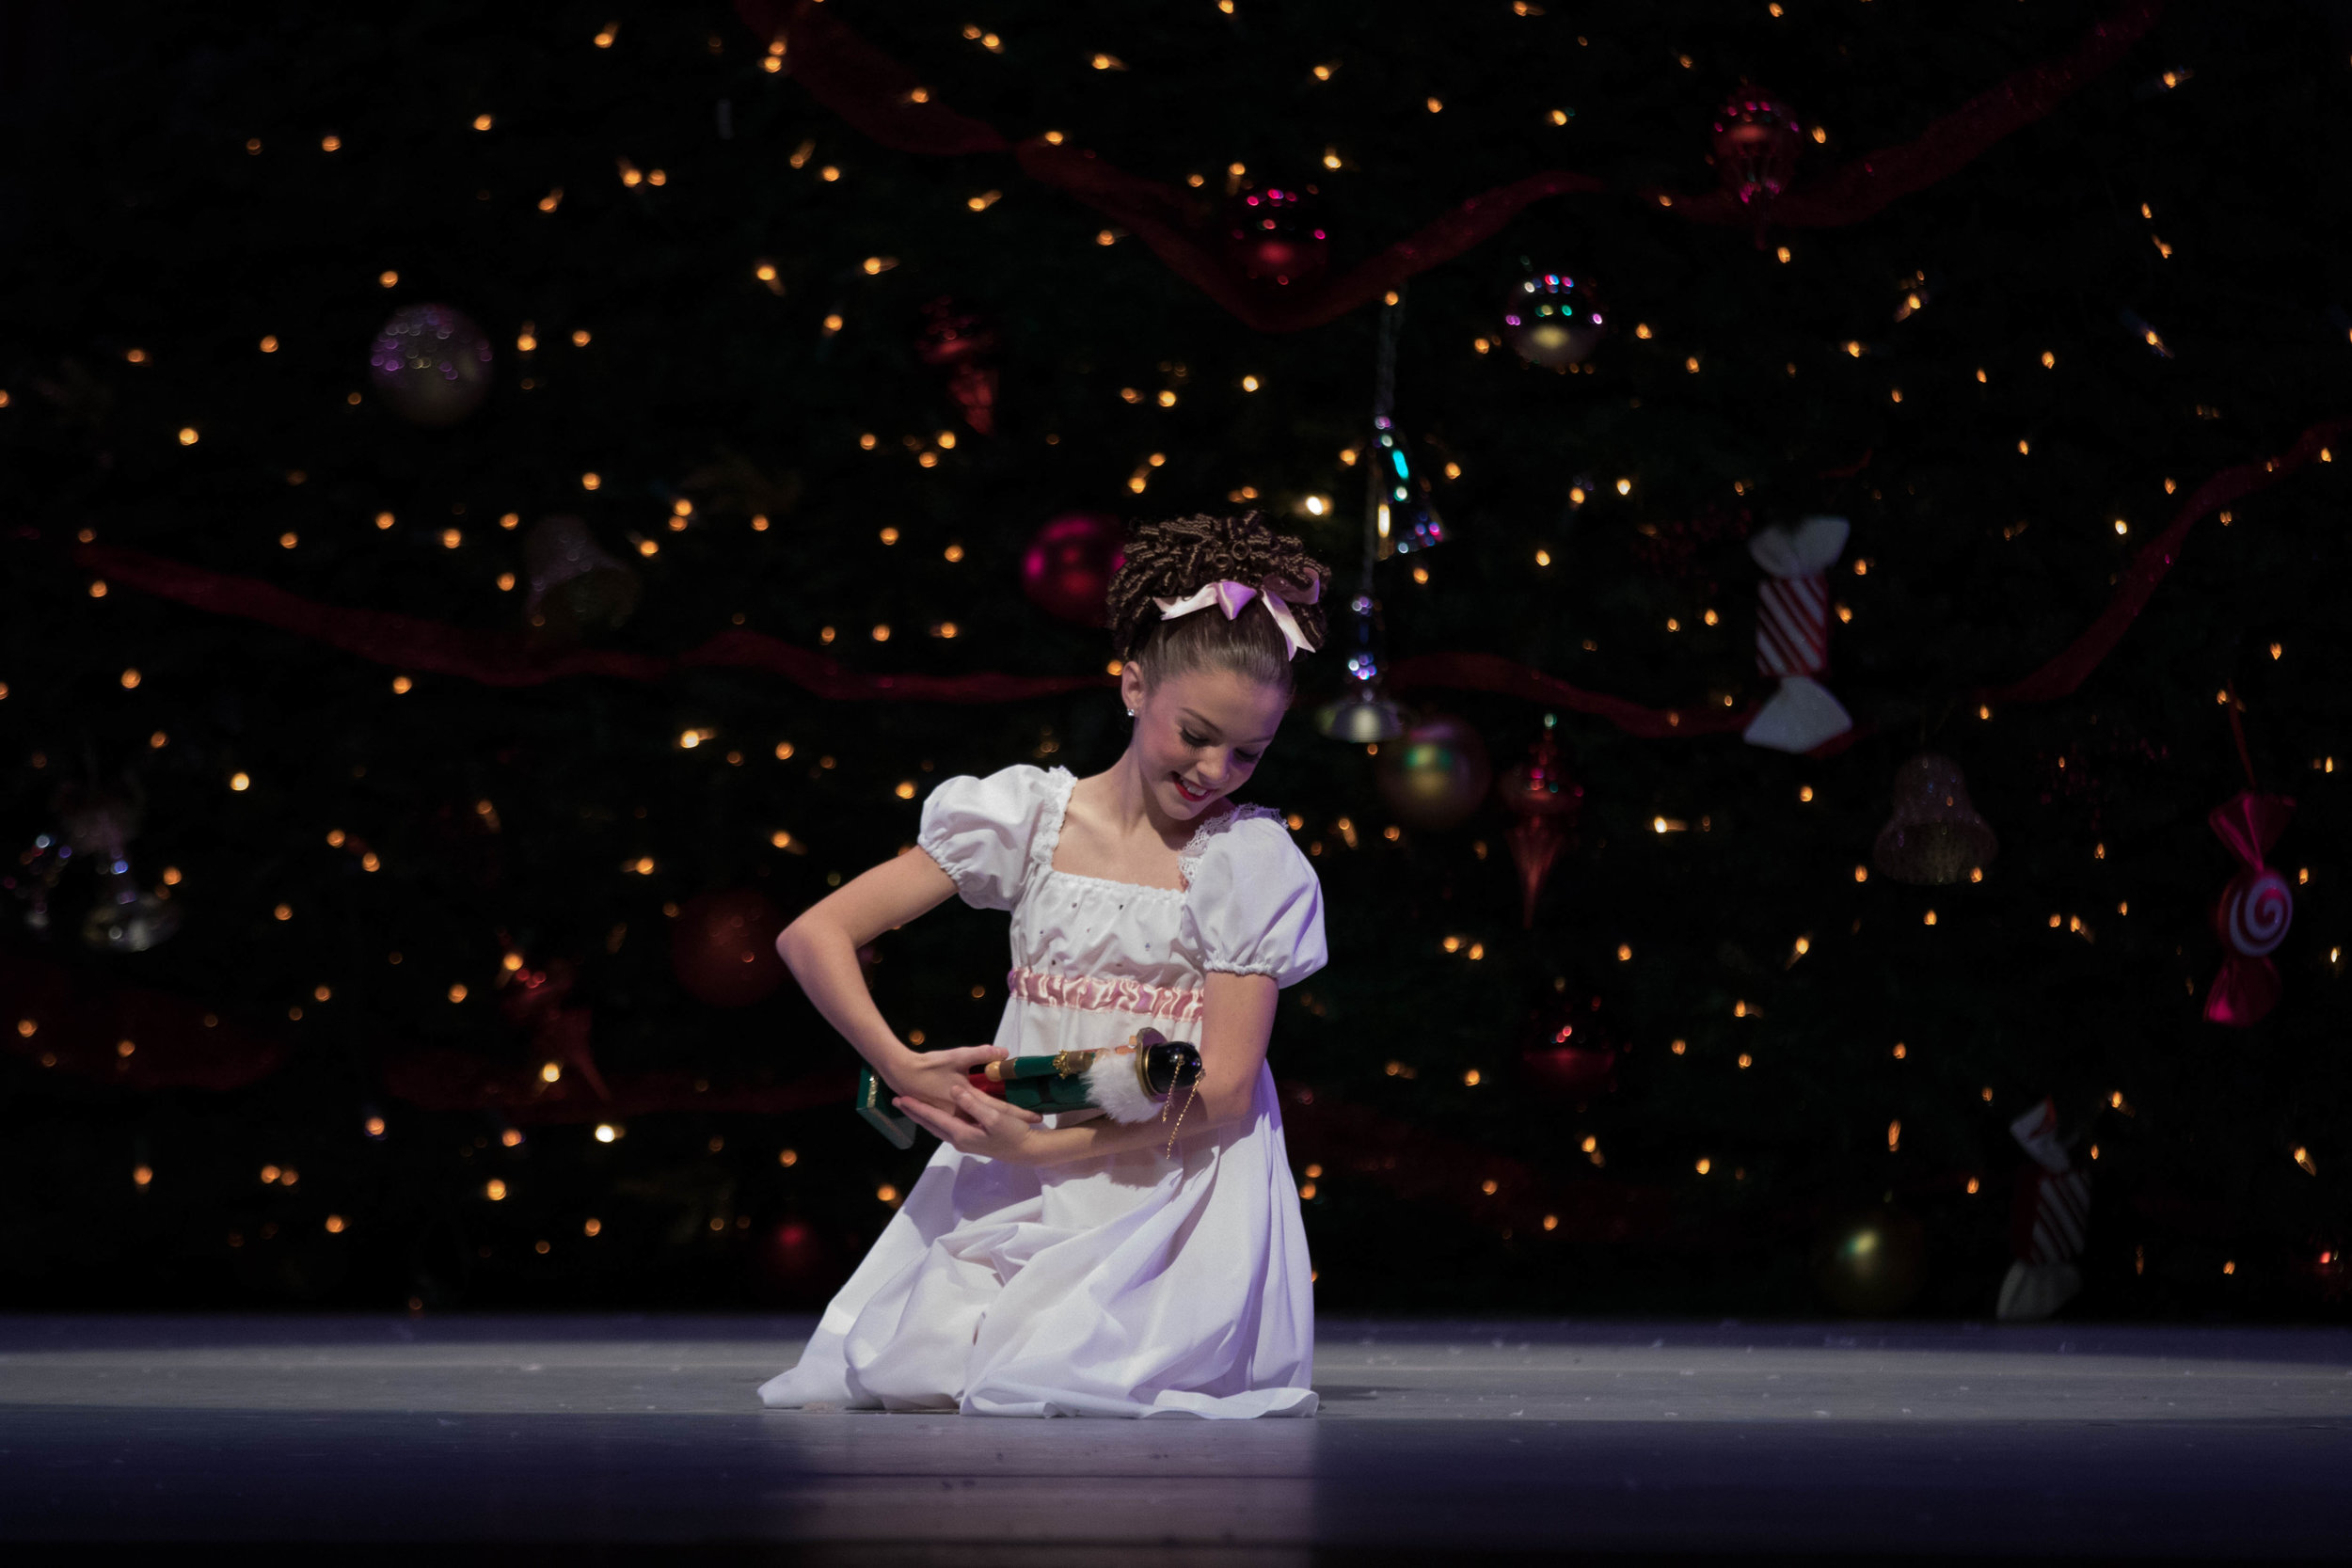 Ms. Ella Naylor as Clara, Nutcracker 2016